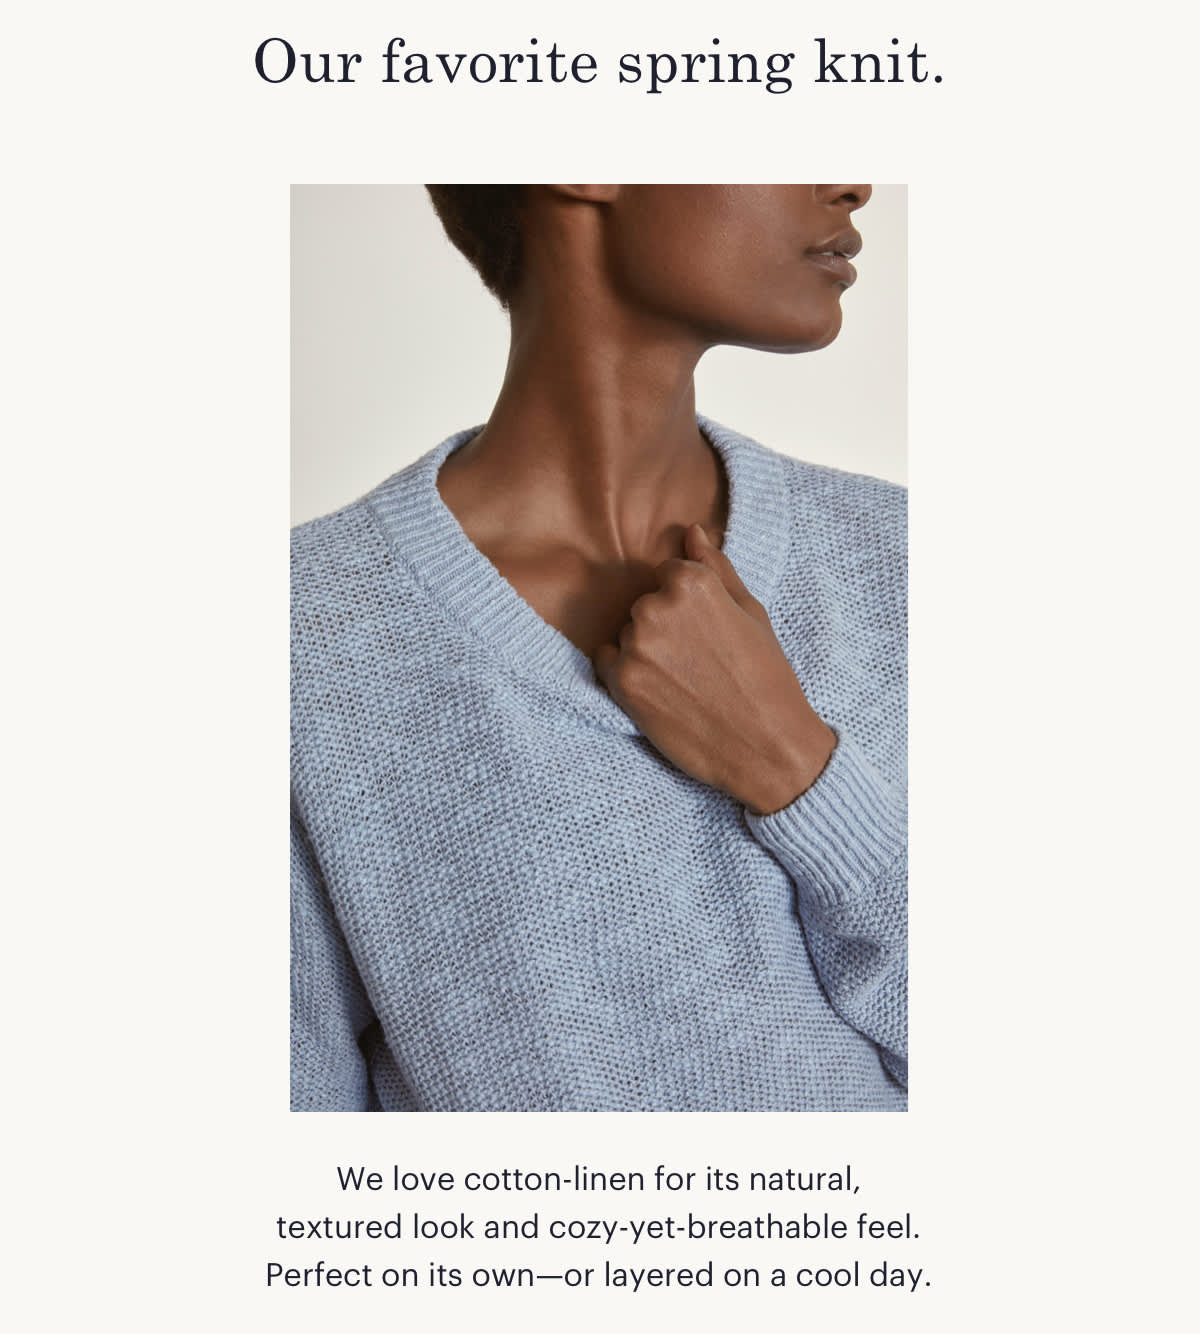 Our favorite spring knit.